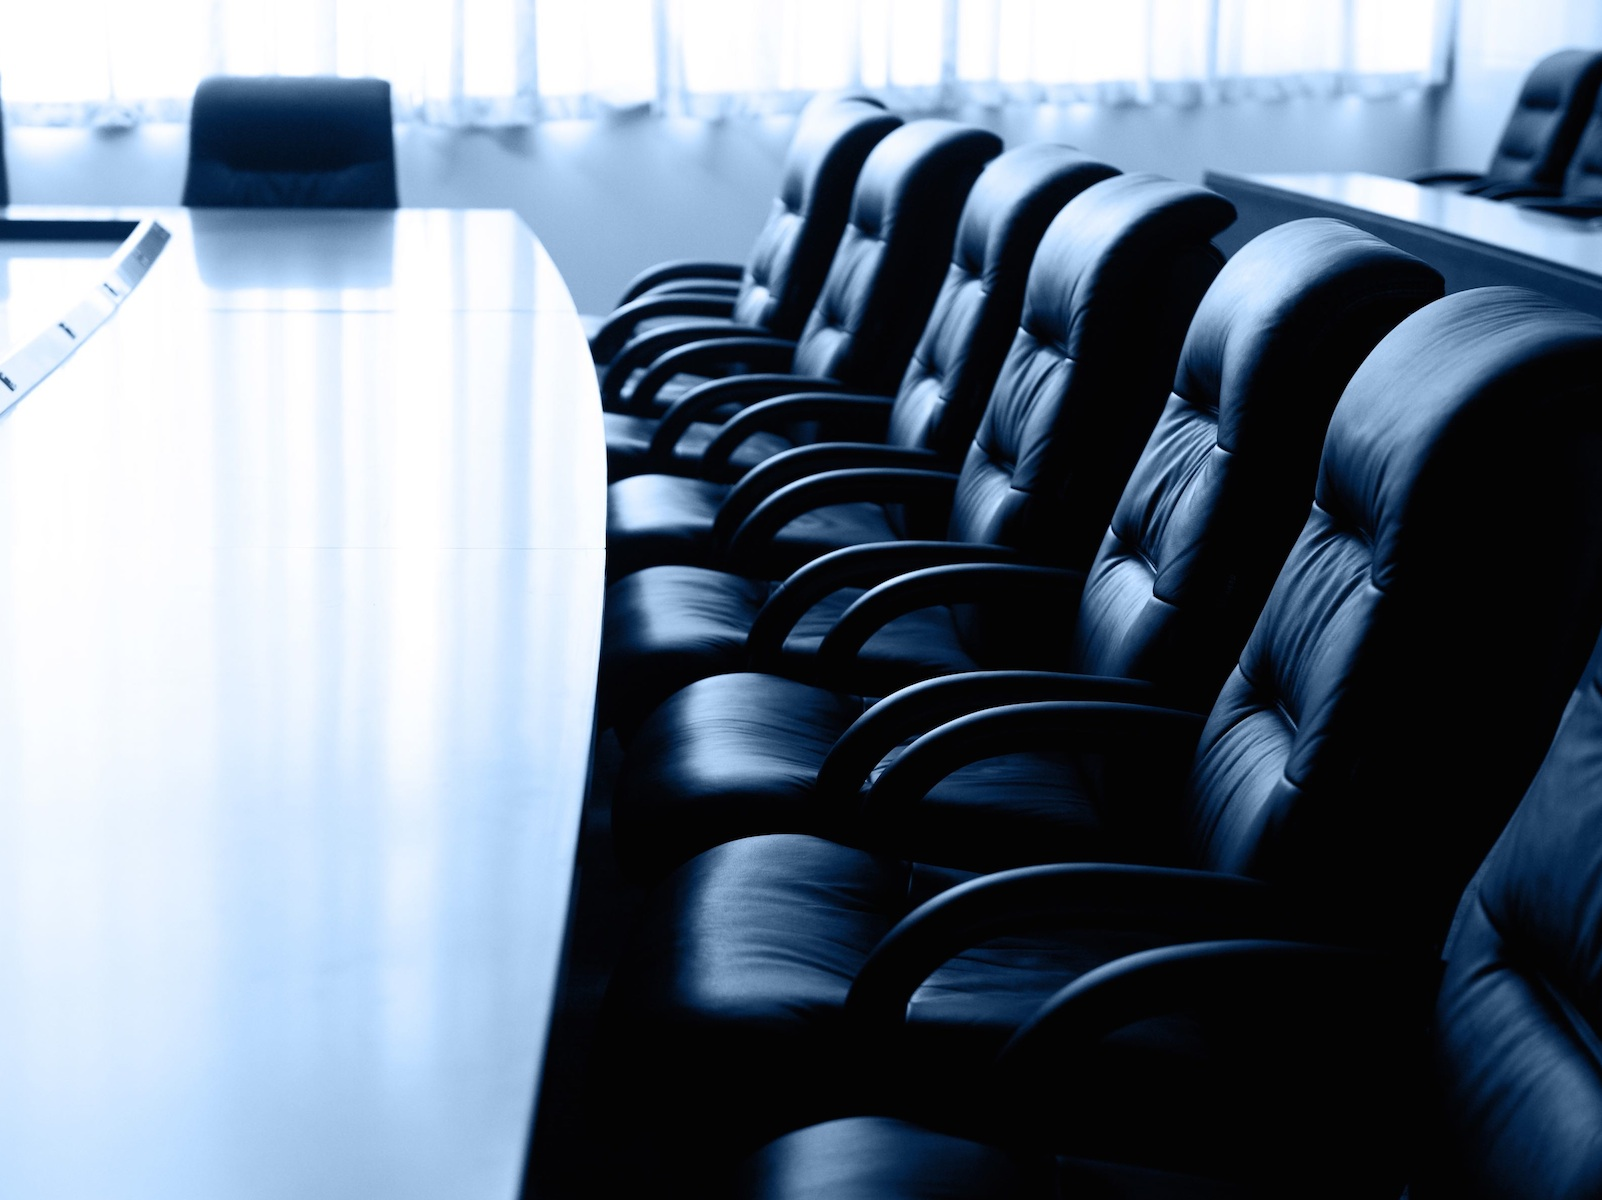 EY Center For Board Matters: As M&A Grows, So Does The Board's Role